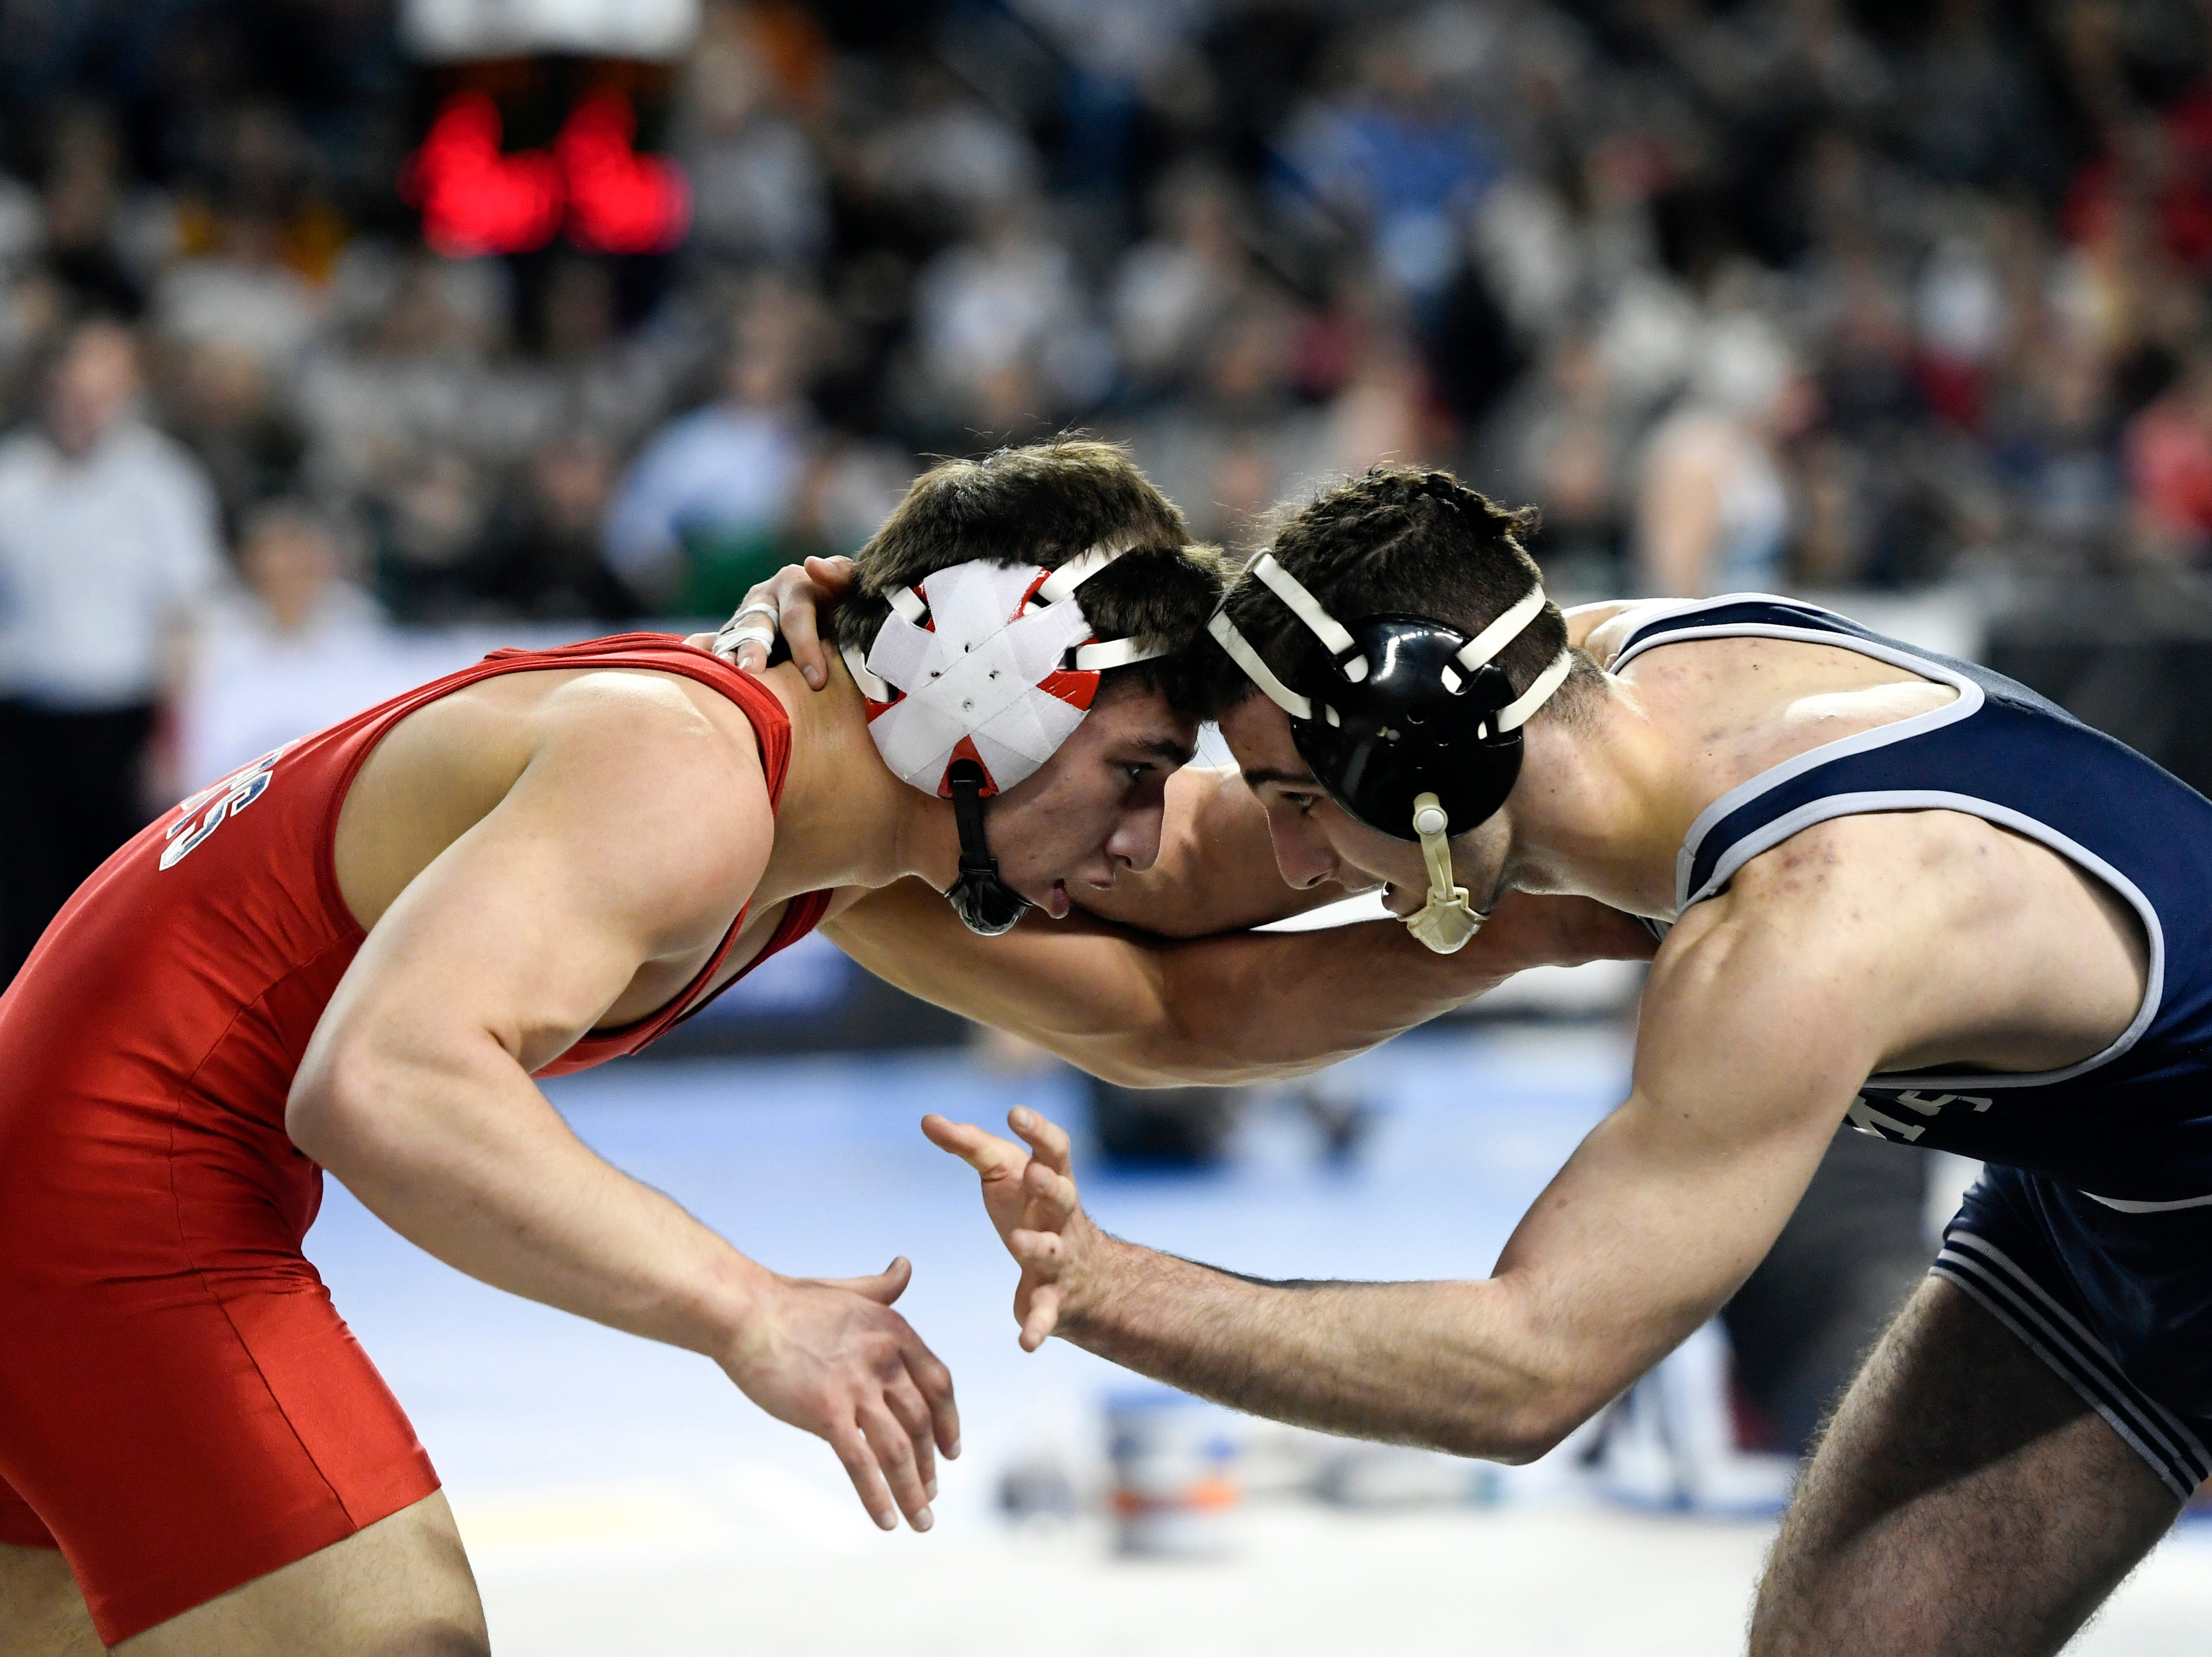 Robert Kanniard of Wall, left, and Tony Asatrian of Paramus wrestle in a 160-pound bout on Day 2 of the NJSIAA state wrestling tournament on Friday, March 1, 2019, in Atlantic City.